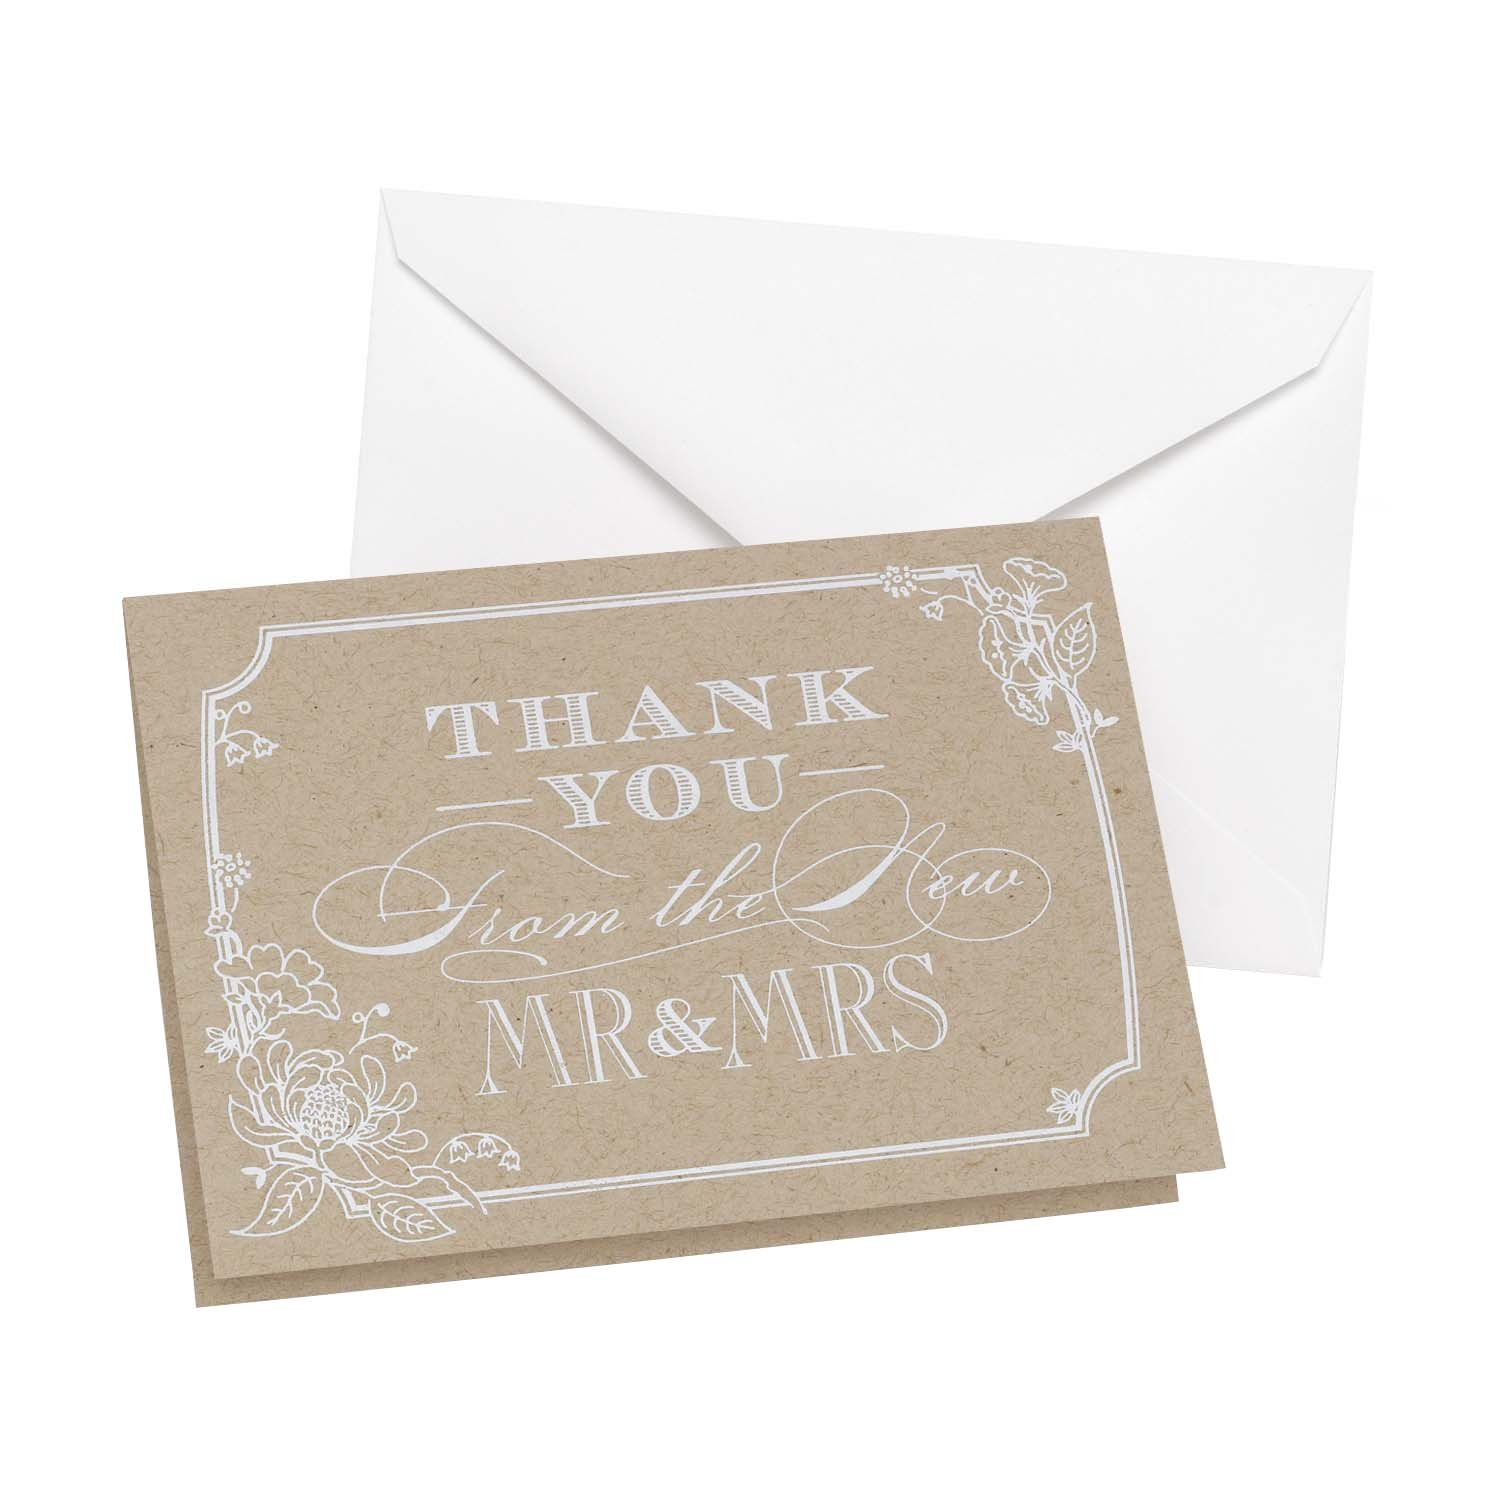 Hortense B Hewitt Country Blossom Thank You Cards 50-Pack 2